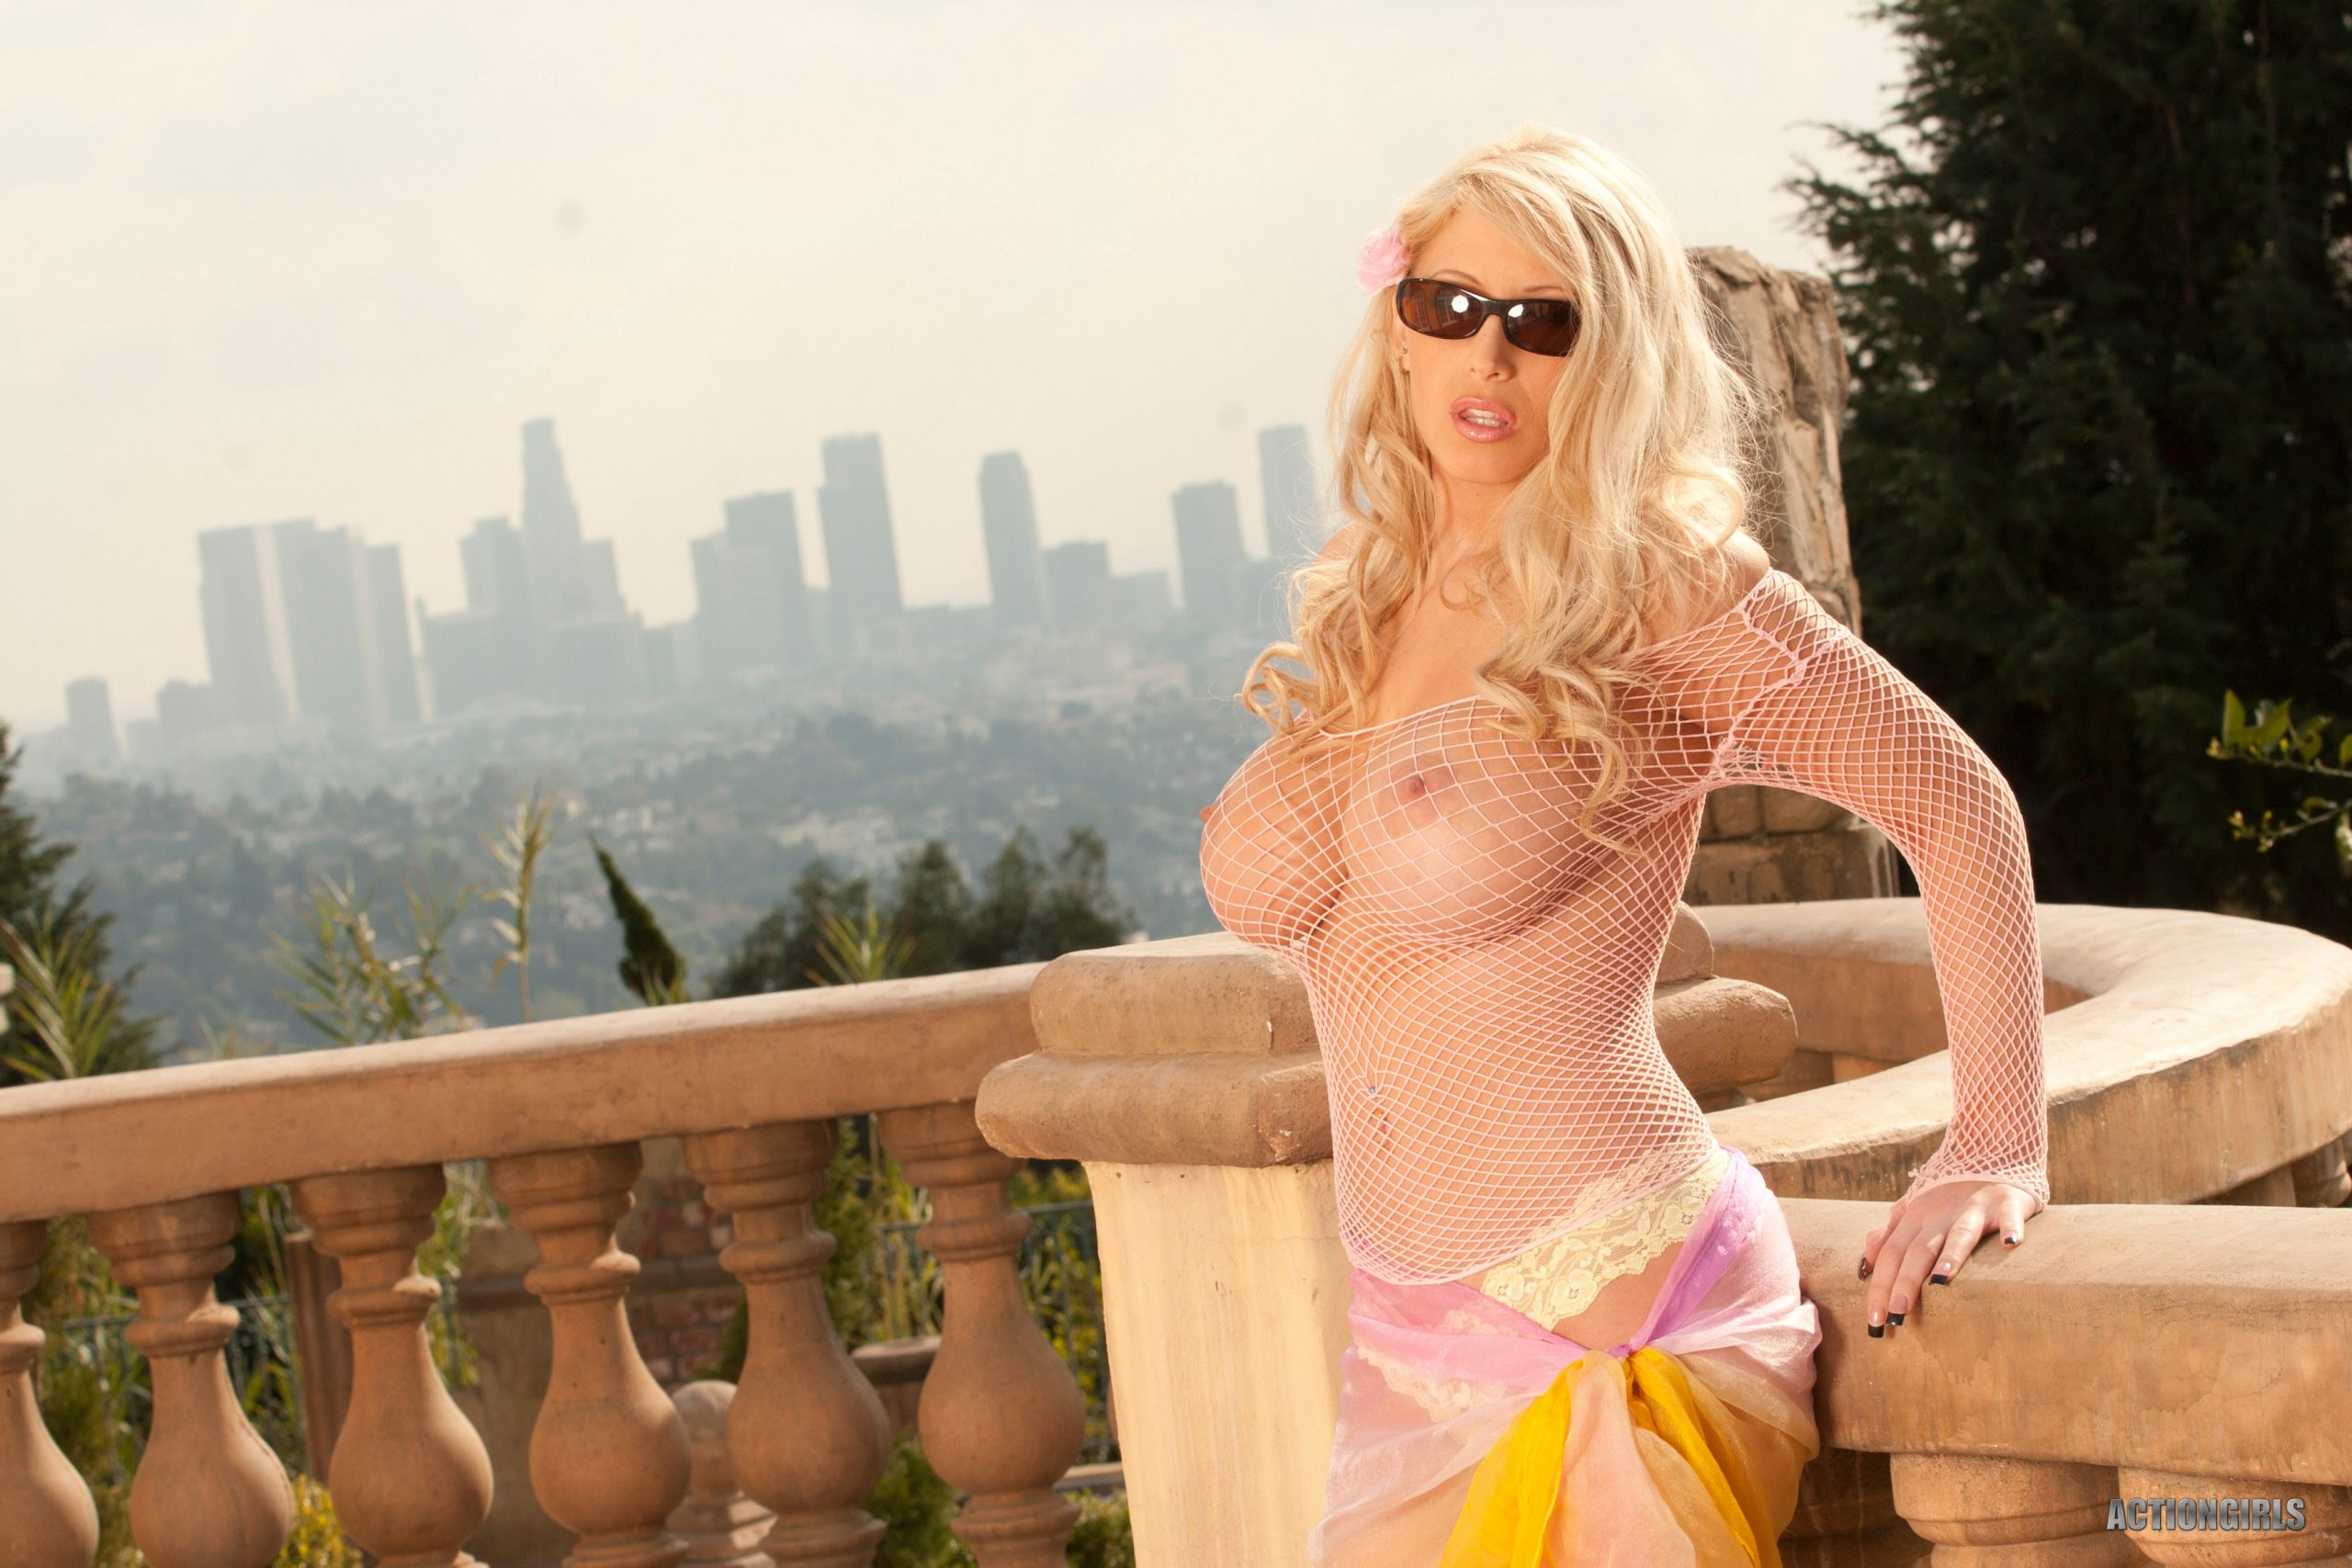 Brooke Becker Big Tit Blonde in Fishnet Shirt for ActionGirls